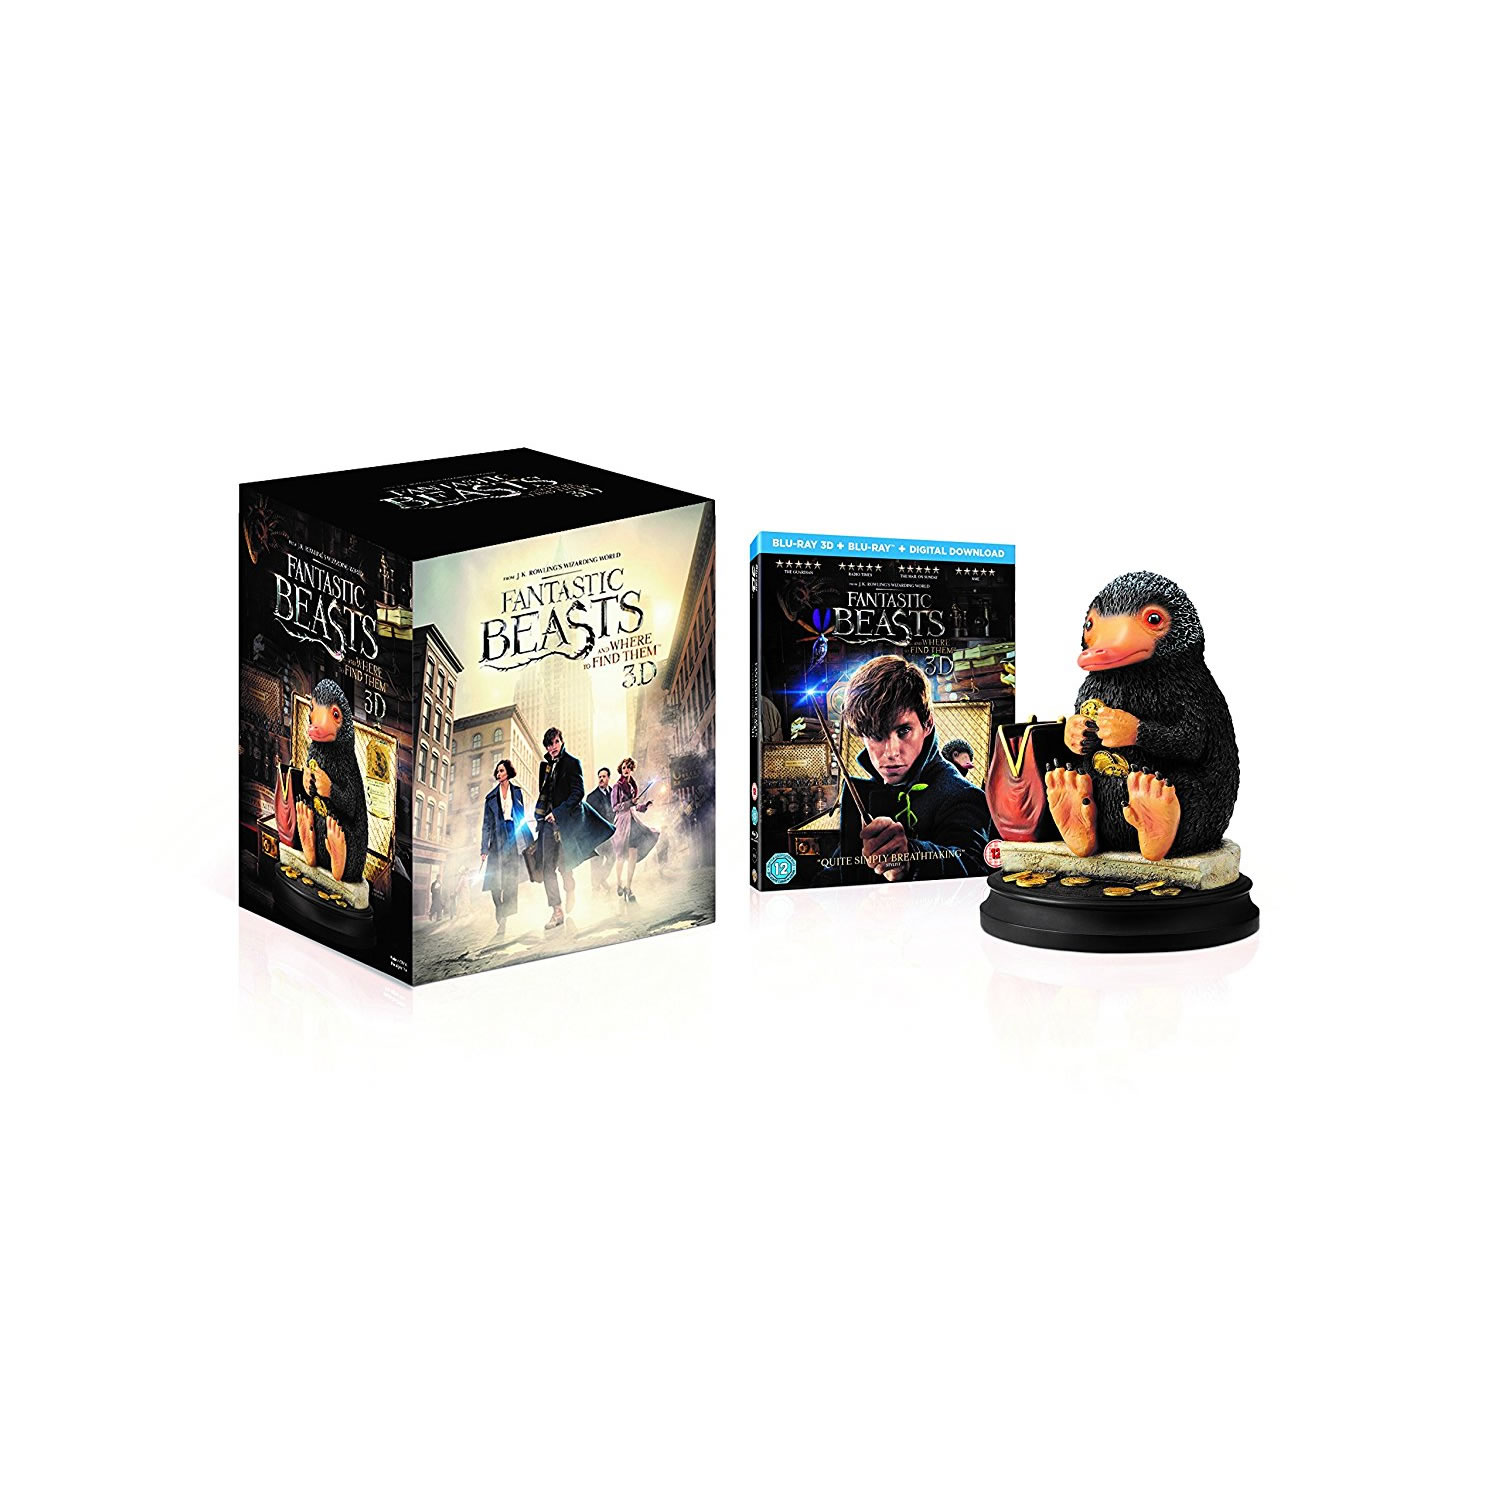 FANTASTIC BEASTS AND WHERE TO FIND THEM 3D + Niffler Statue Limited Collector's Edition (BLU-RAY 3D + BLU-RAY)